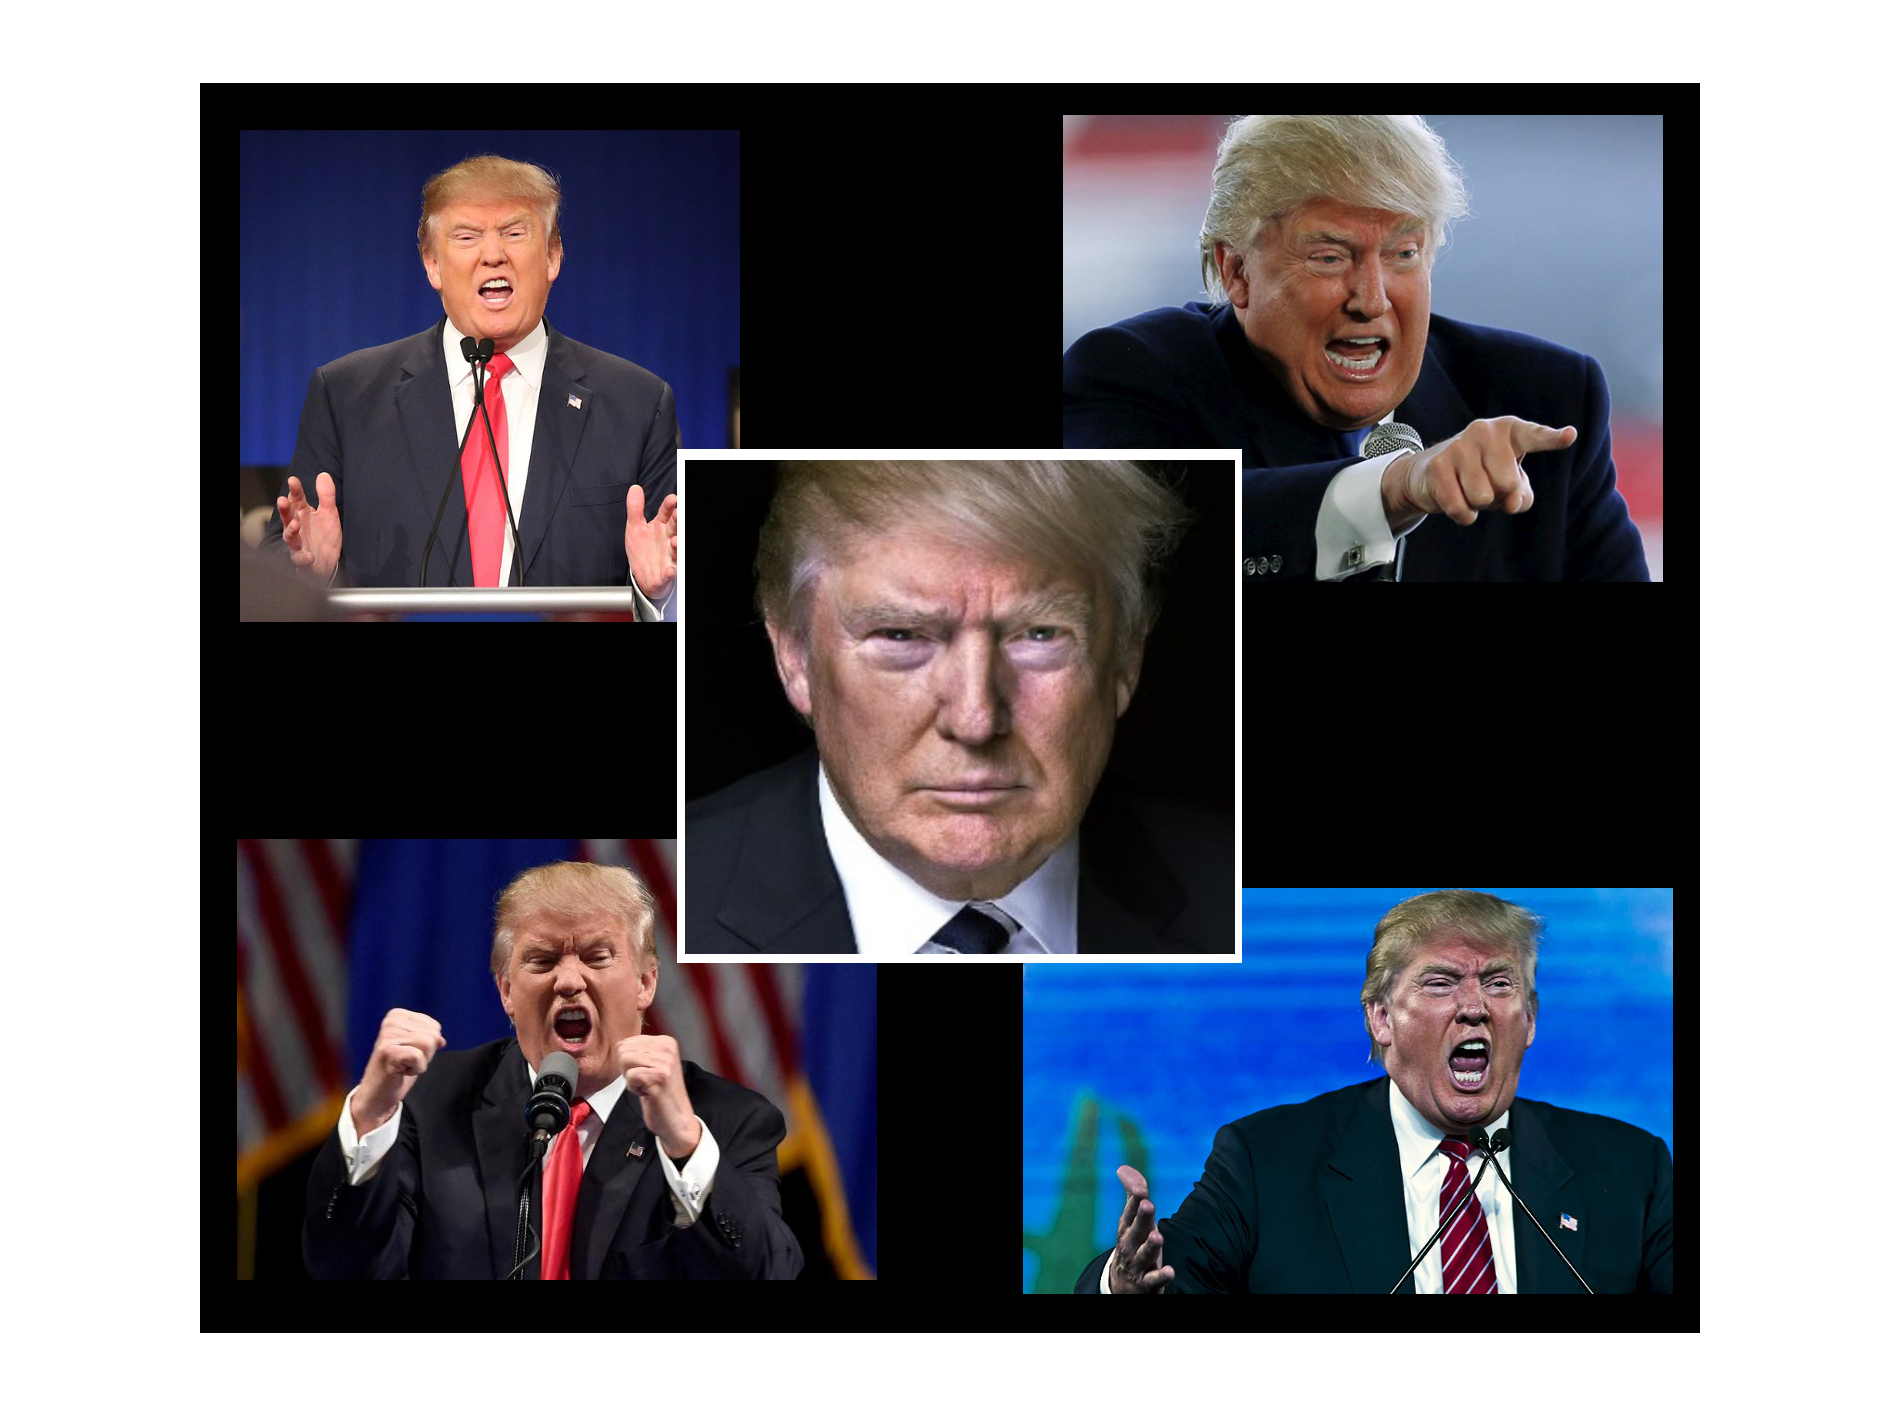 President Trump: The 5 Reasons You Are Not A Disruptive Leader And Instead Create Chaos